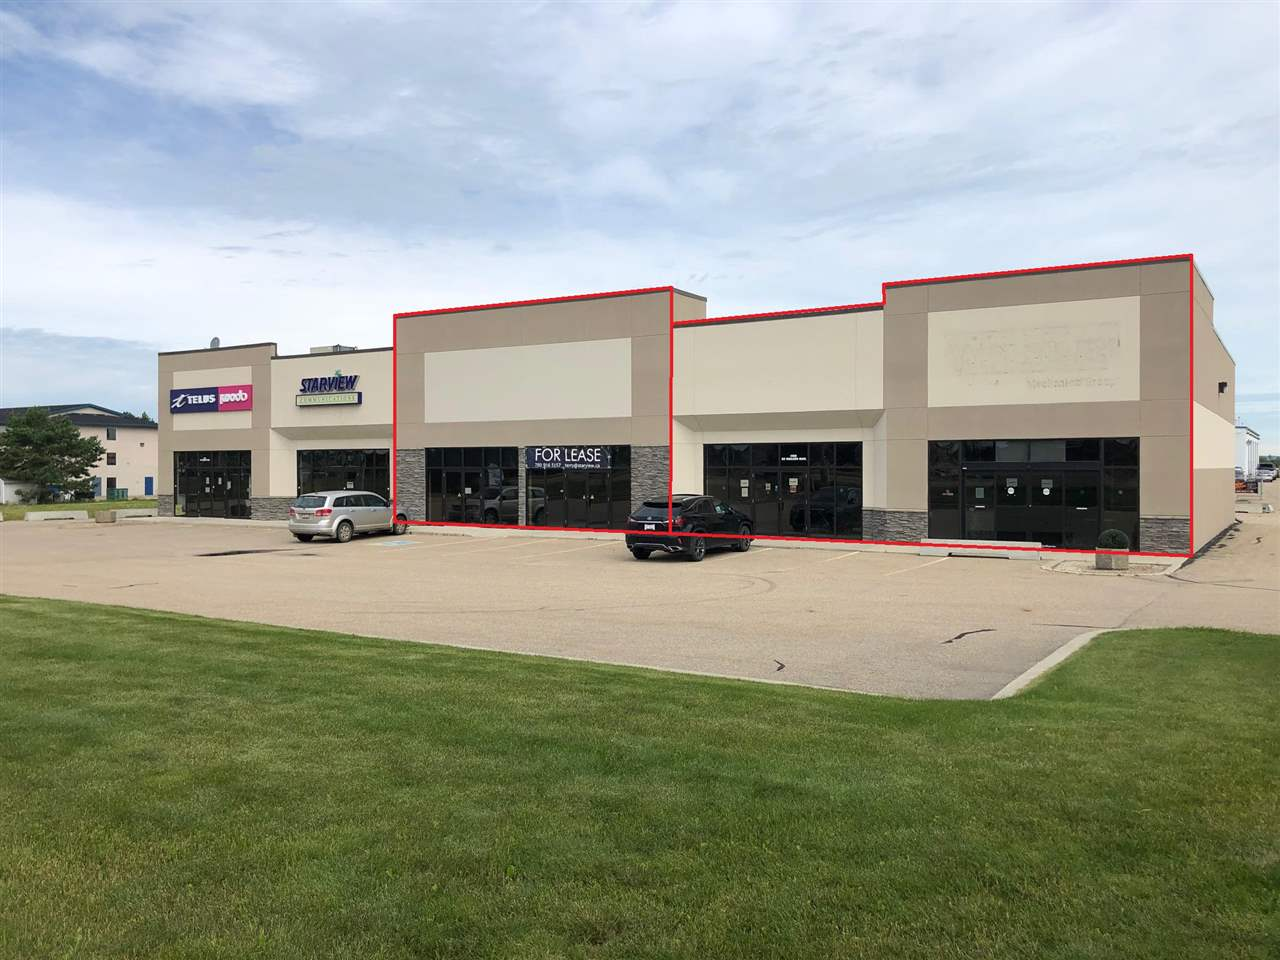 Quasi retail/industrial building on 1.3 acres. Almost fully paved lot, direct exposure to Highway 16A (24,920 AVPD). Surrounded by retail, hotel and industrial uses. Pylon signage with digital component. 2,750-6,250 SF available to occupy whether for owner user or for lease. 2,750 SF bay features open showroom and office, small mezzanine office and the balance warehouse with one 10' x 14' overhead door. 3,500 SF bay can be demised, currently all open showroom with two washrooms, one 8'x8' overhead door and a 30'x24' fenced compound behind the bay. Rooftop HVAC (all replaced in 2019), separately metered, high ceilings.